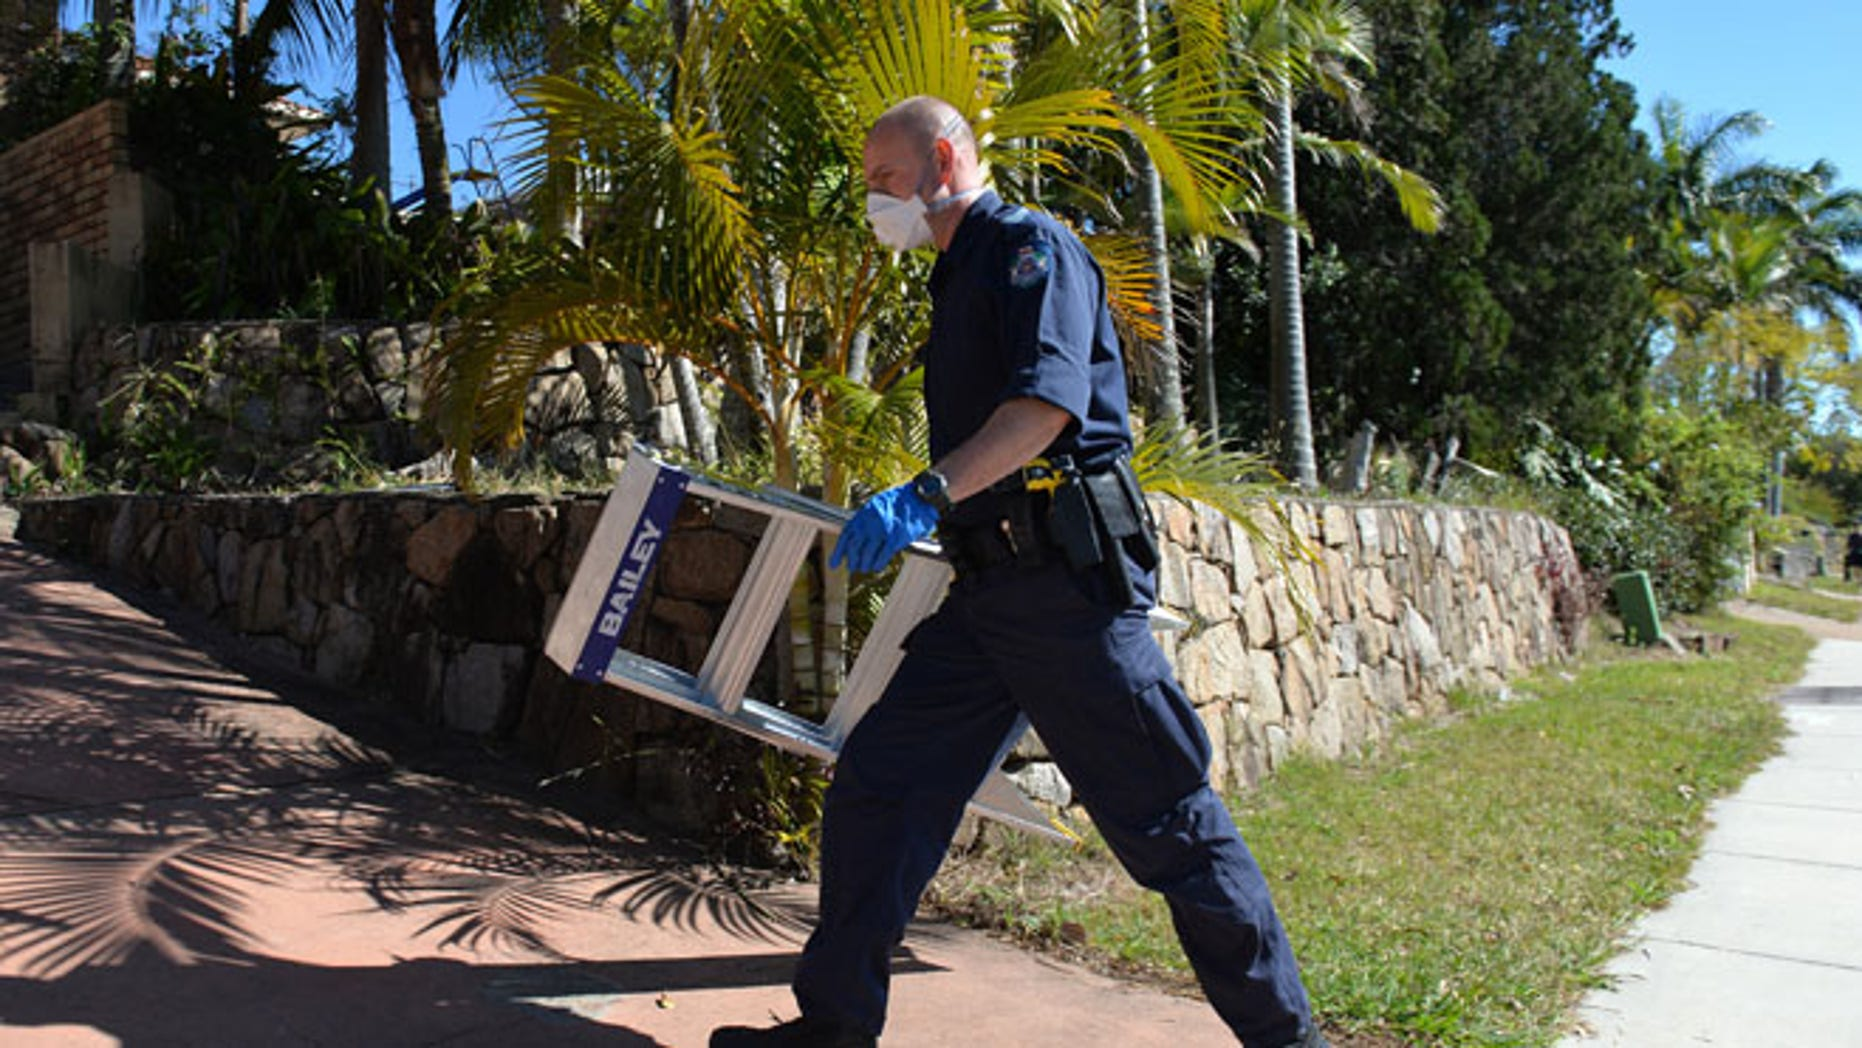 Sept. 18, 2014: A police officer searches a house in Mount Gravatt, Brisbane, Australia